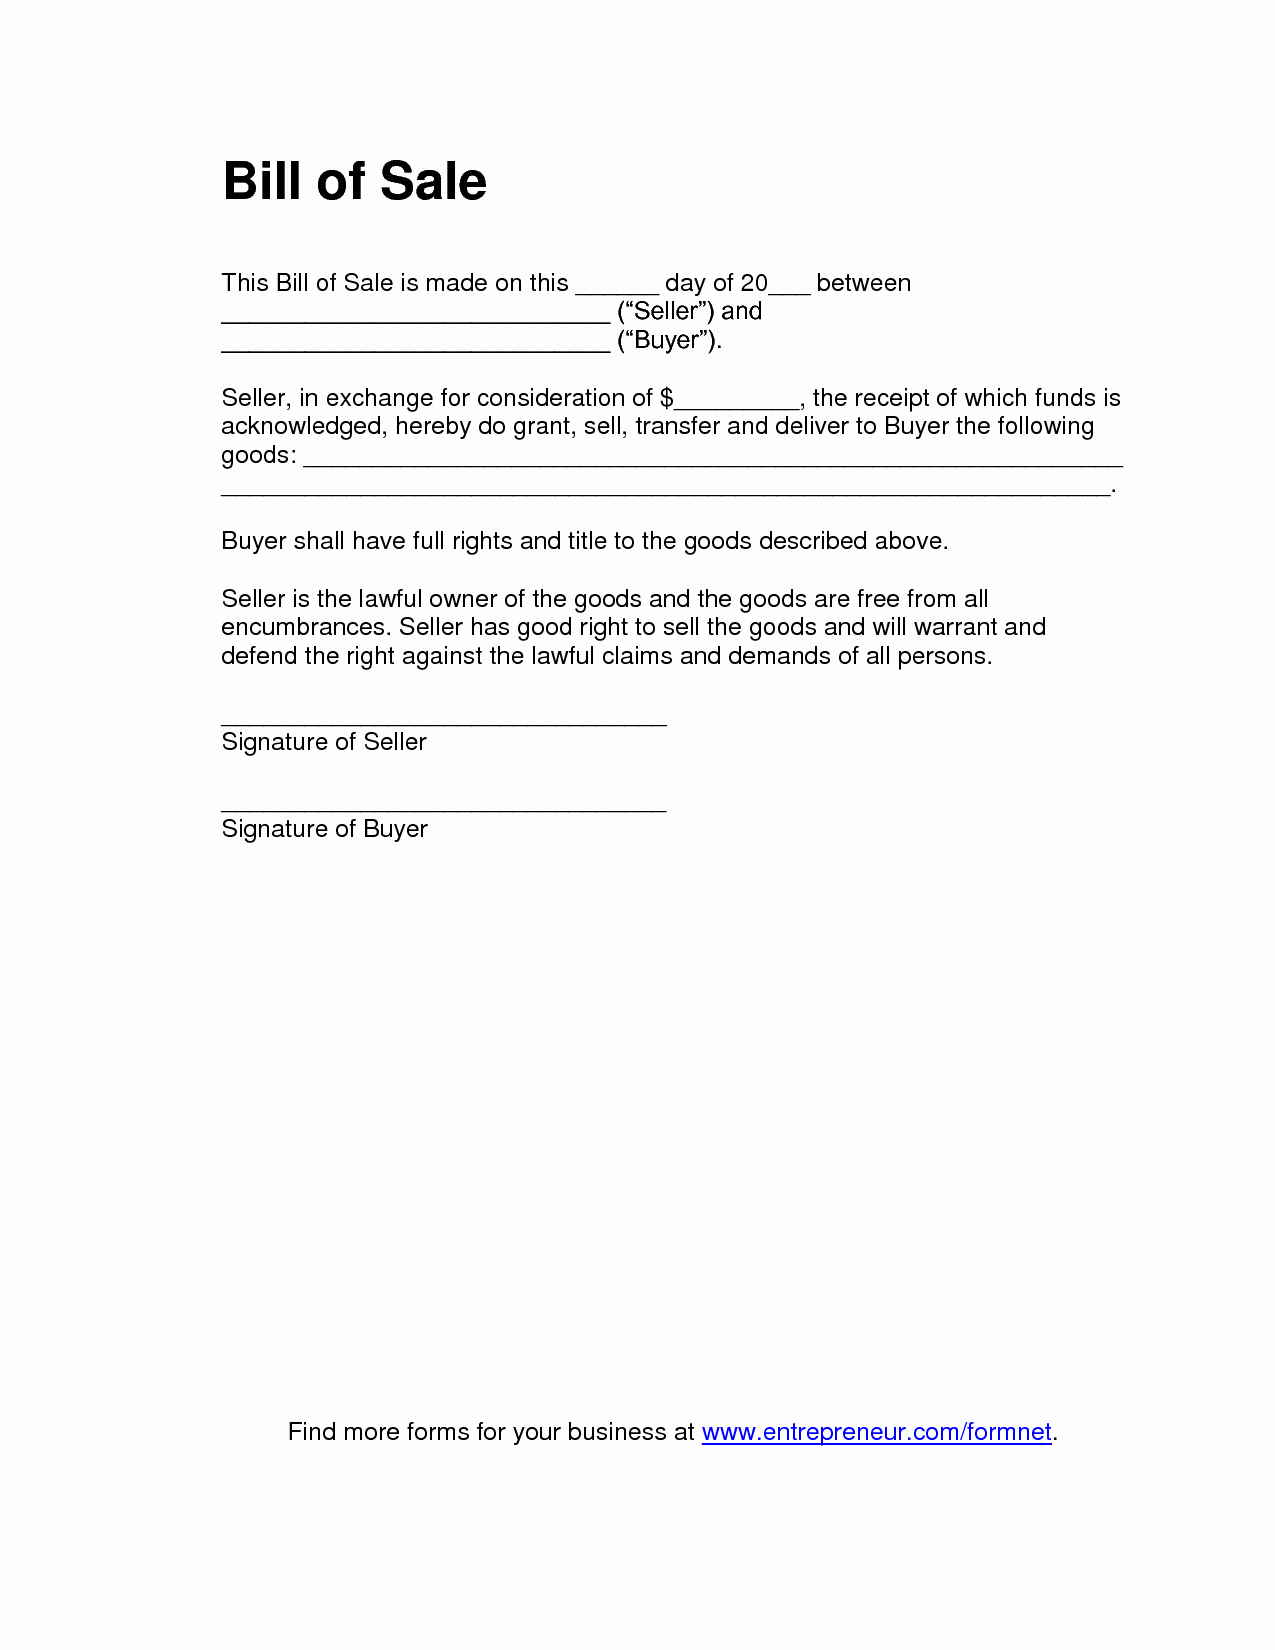 Bill Of Sale Template Free Awesome Free Printable Bill Of Sale Templates form Generic